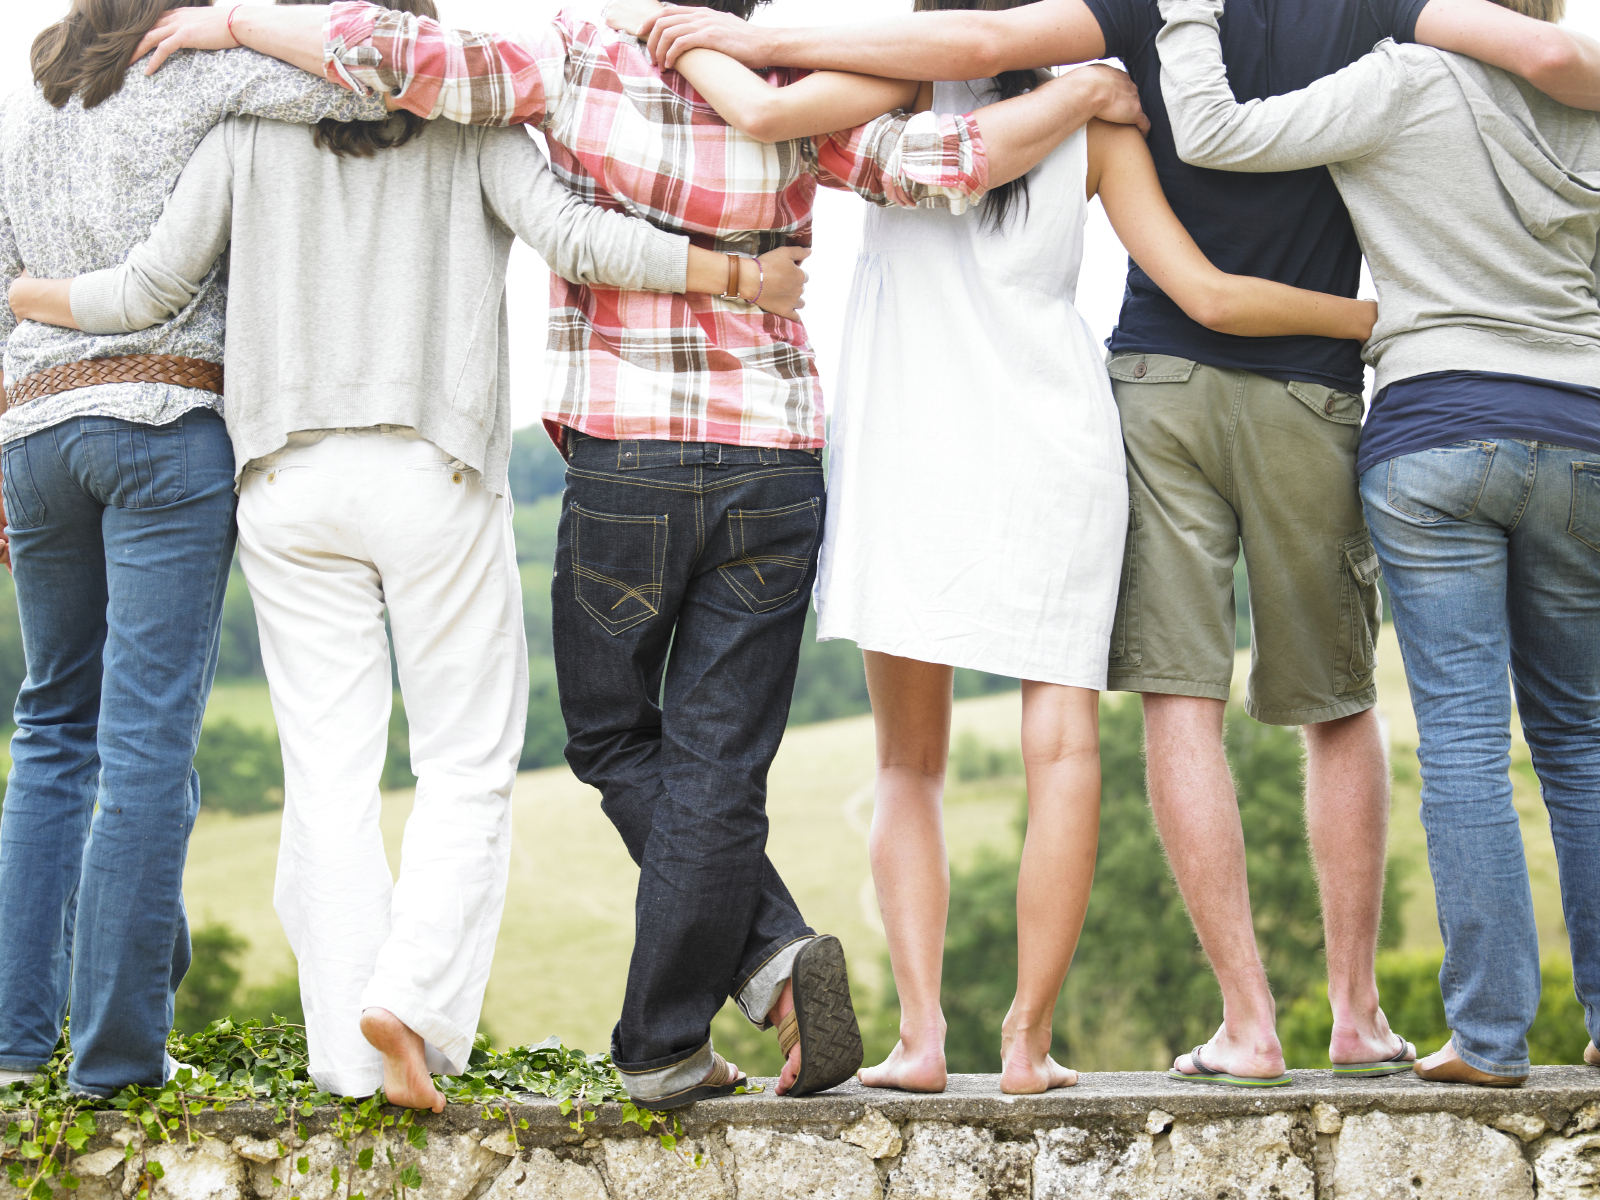 The importance of friendships - LIFE 107 1 LIFE 107 1